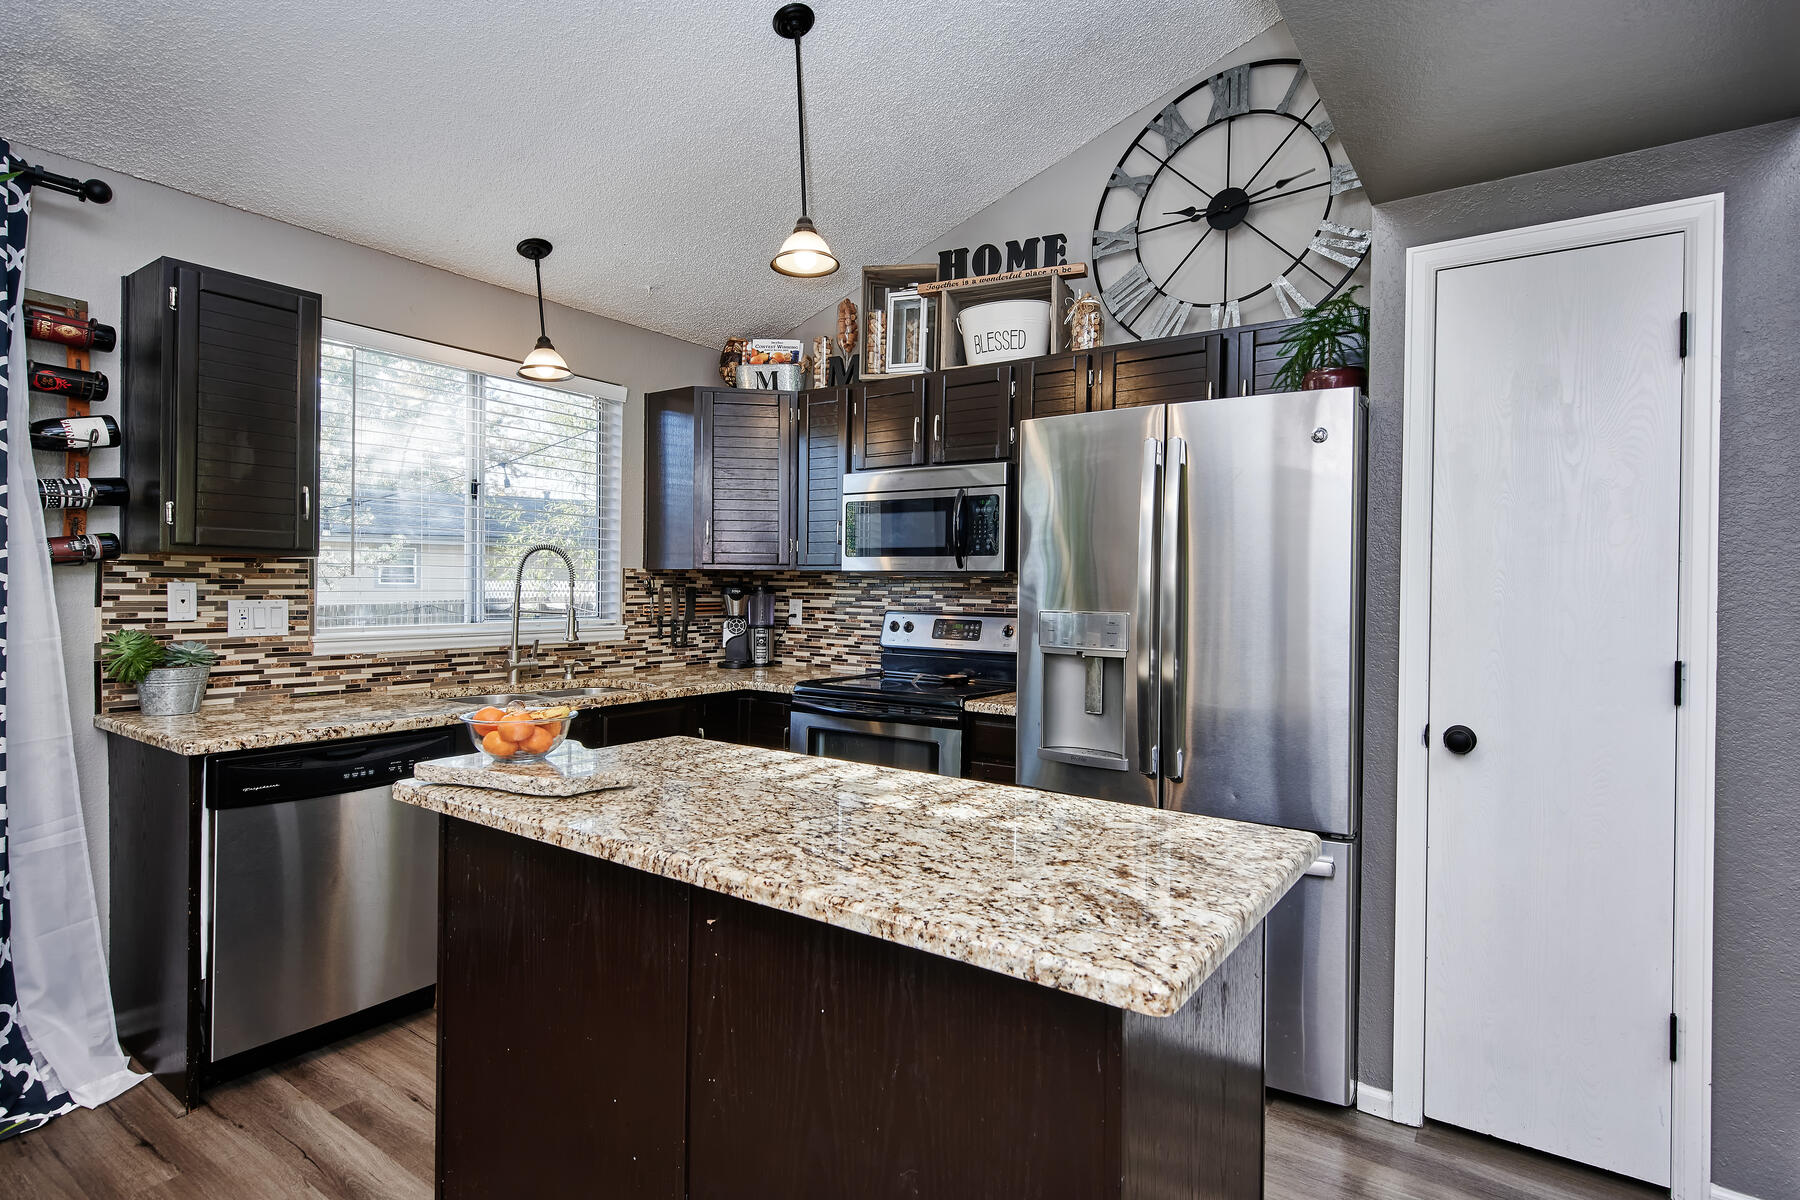 Kitchen Island Adds More Counterspace & Storage